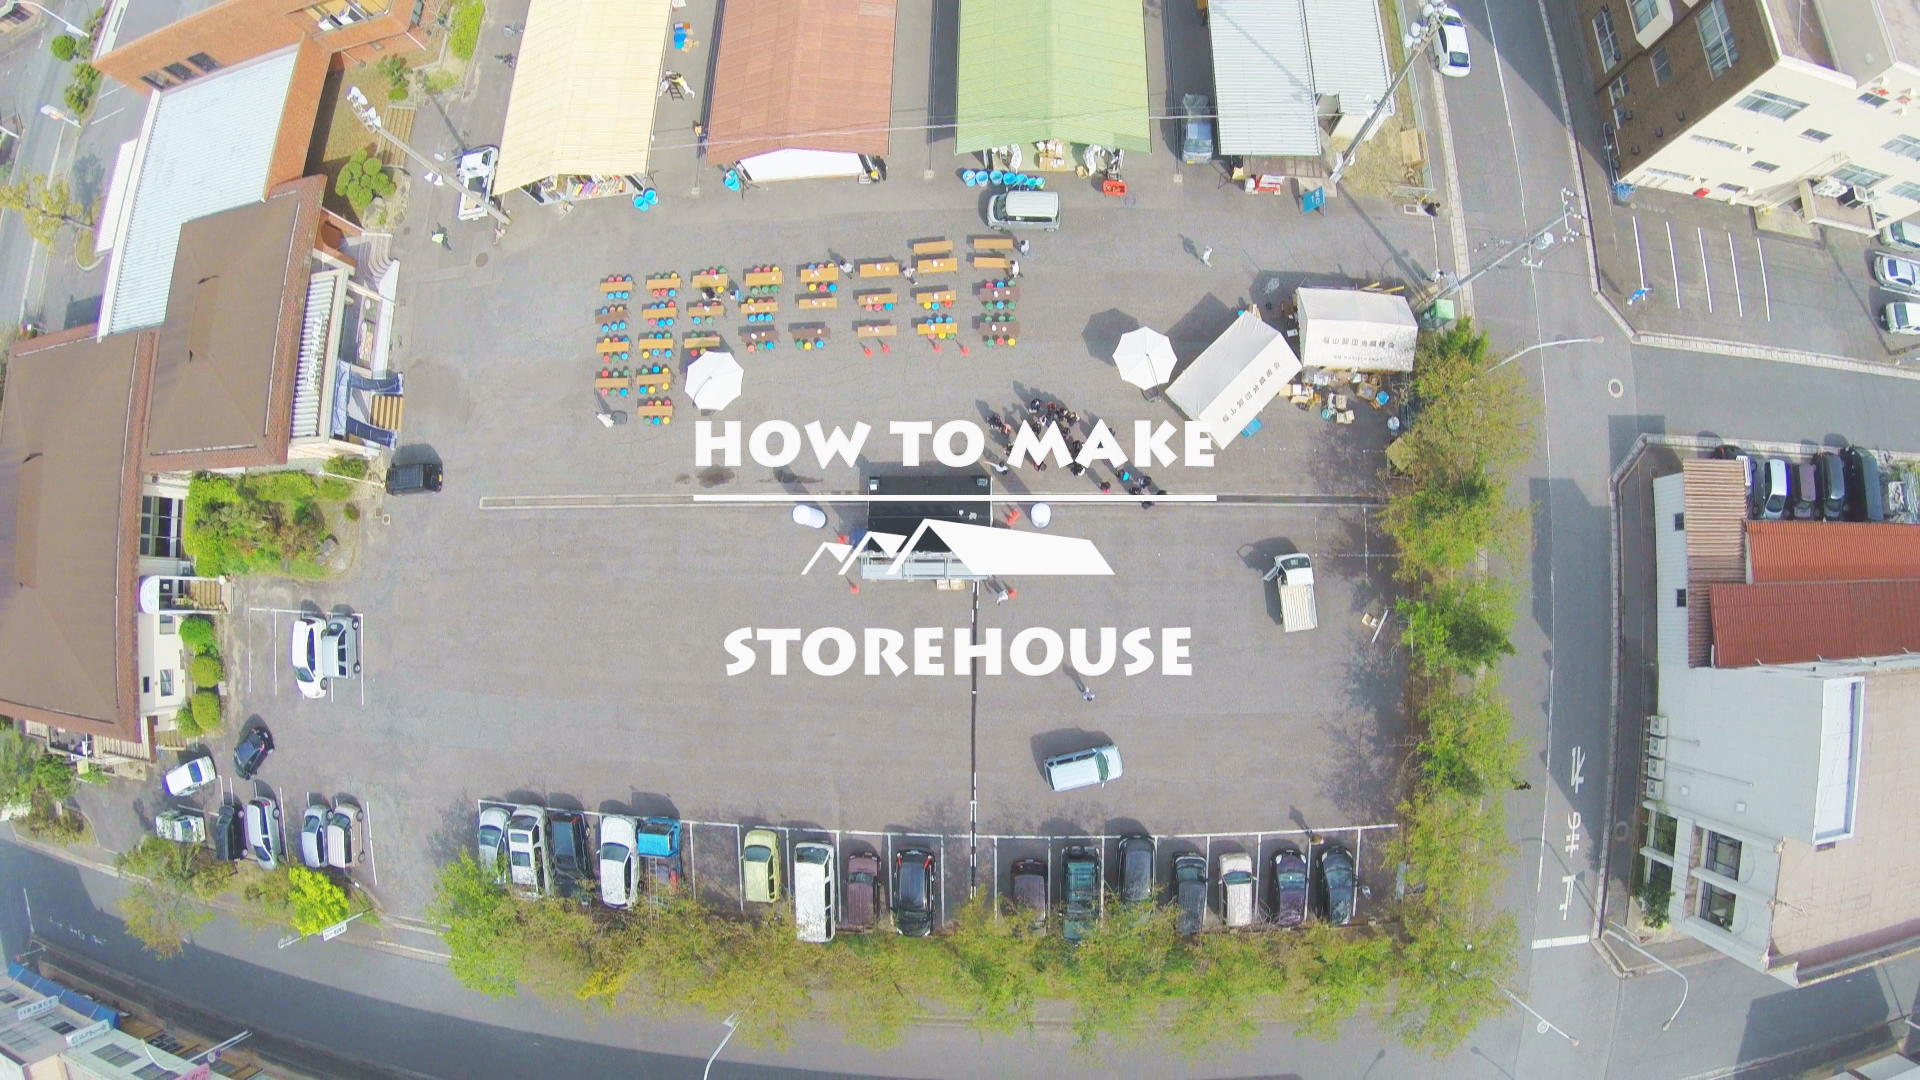 HOW TO MAKE STOREHOUSE